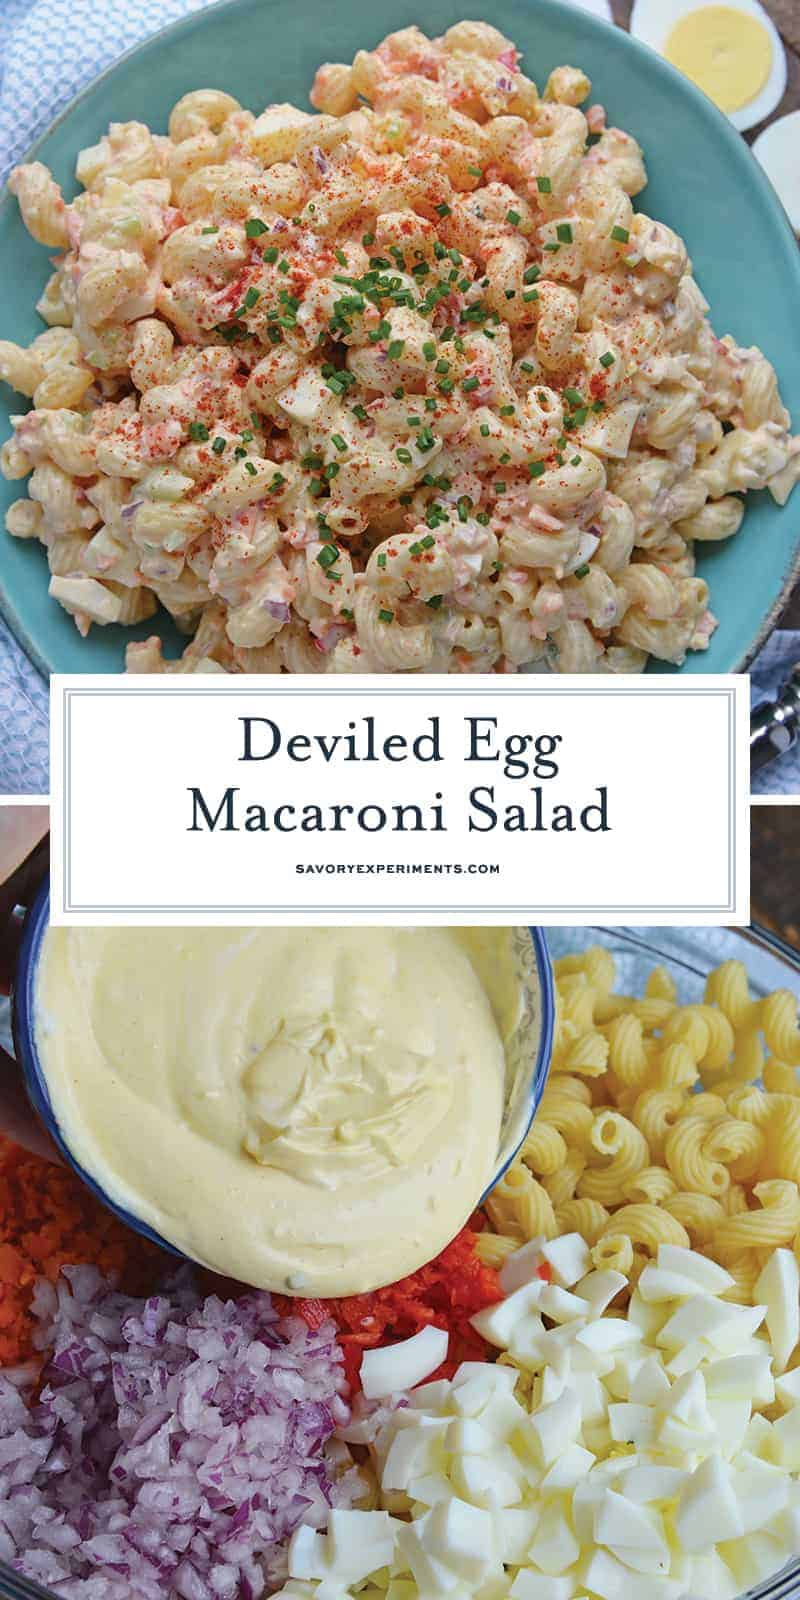 Collage of Deviled Egg Macaroni Salad for Pinterest